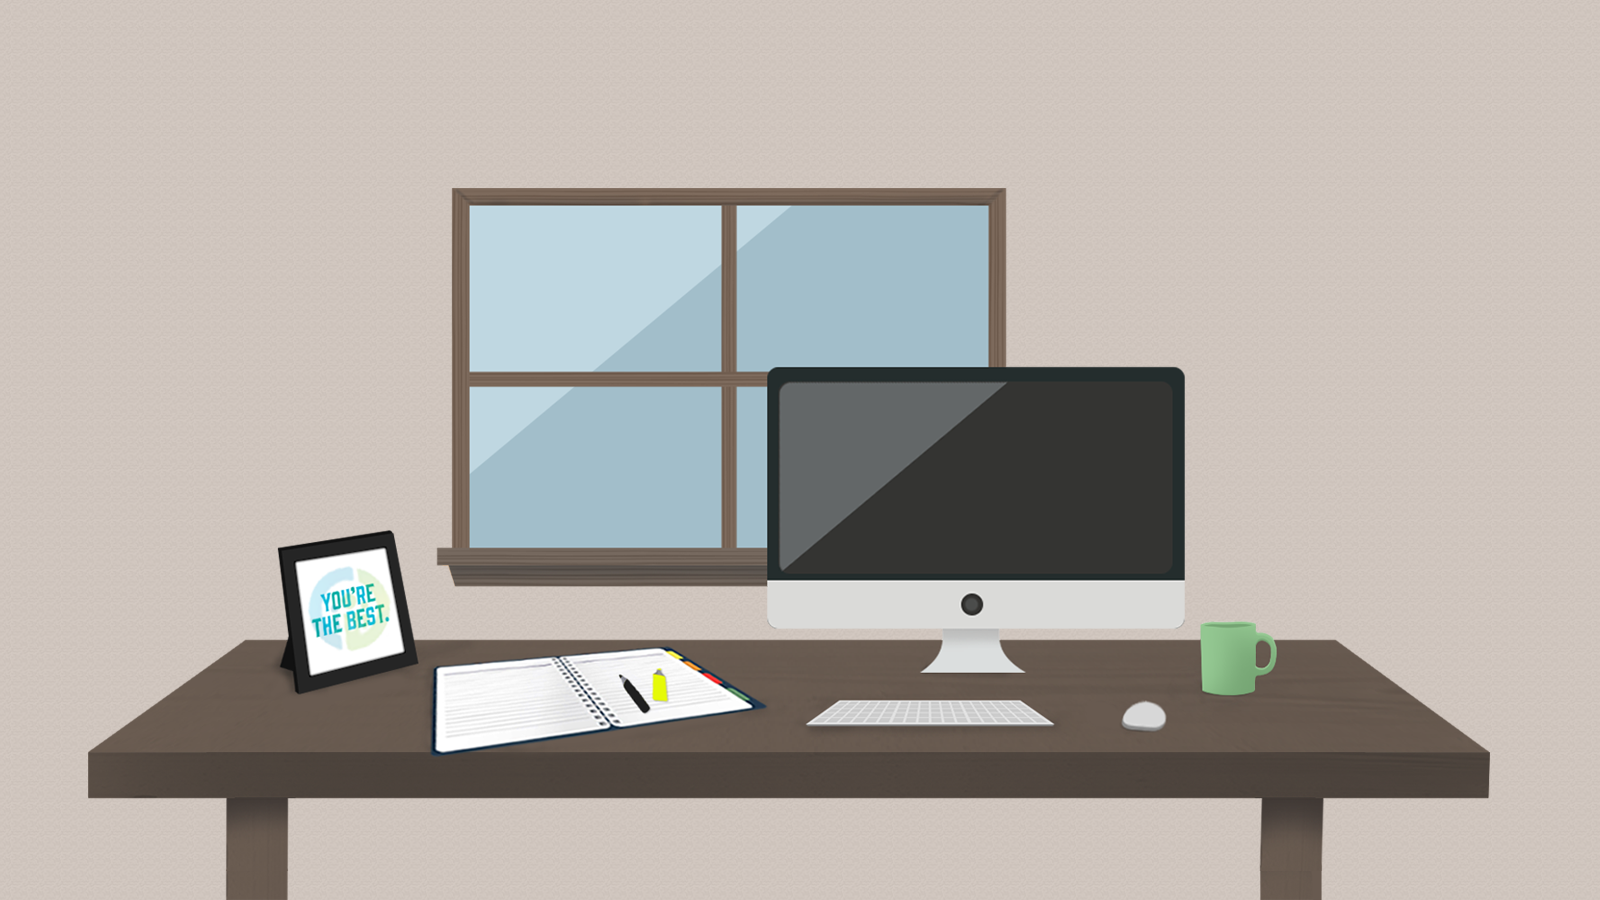 4 Best Practices for Remote Team Management